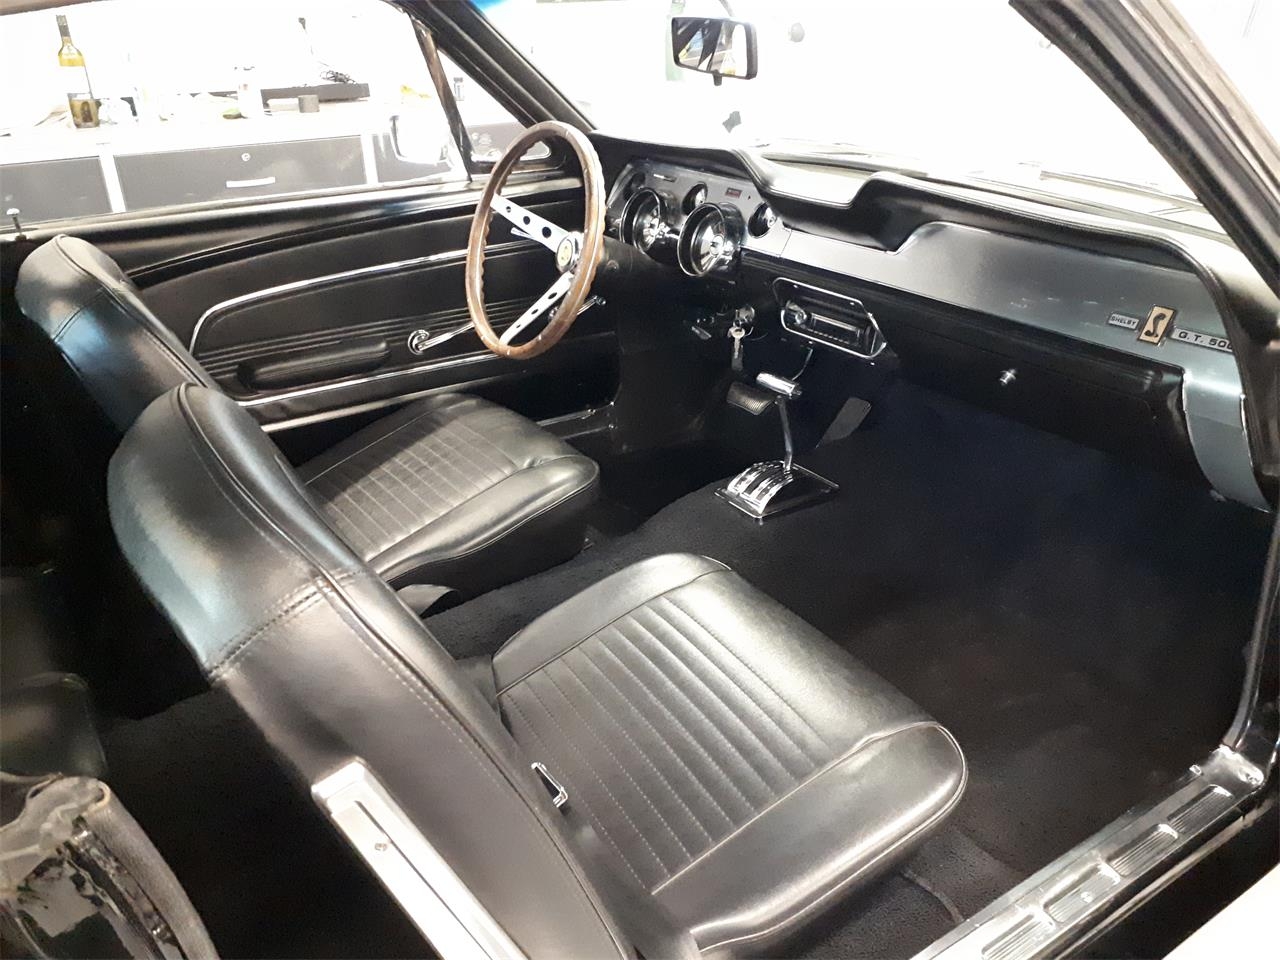 Large Picture of Classic '67 Mustang located in Quebec Offered by a Private Seller - QH2P